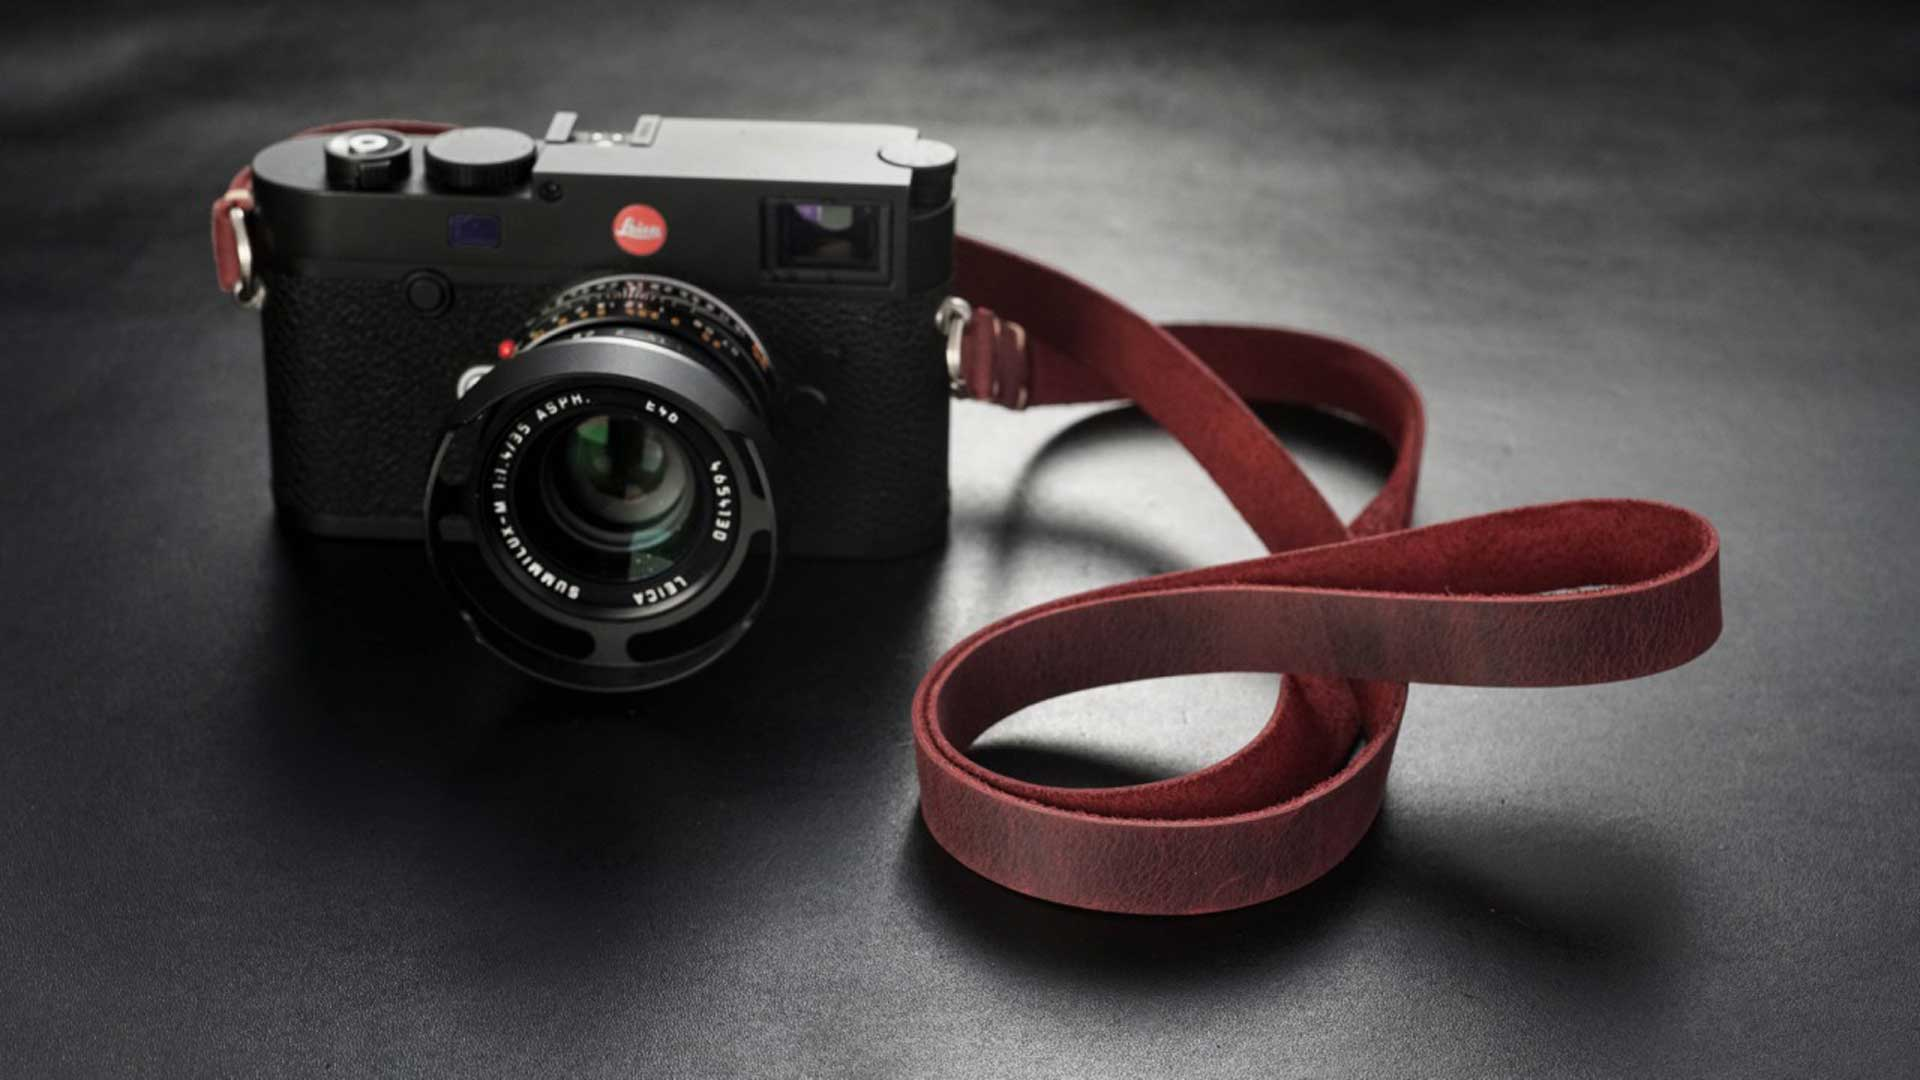 classic strap, leather camera strap, handmade leather camera strap, leica camera strap, mirrorless camera strap, handmade camera strap, dslr camera strap, deep red camera strap